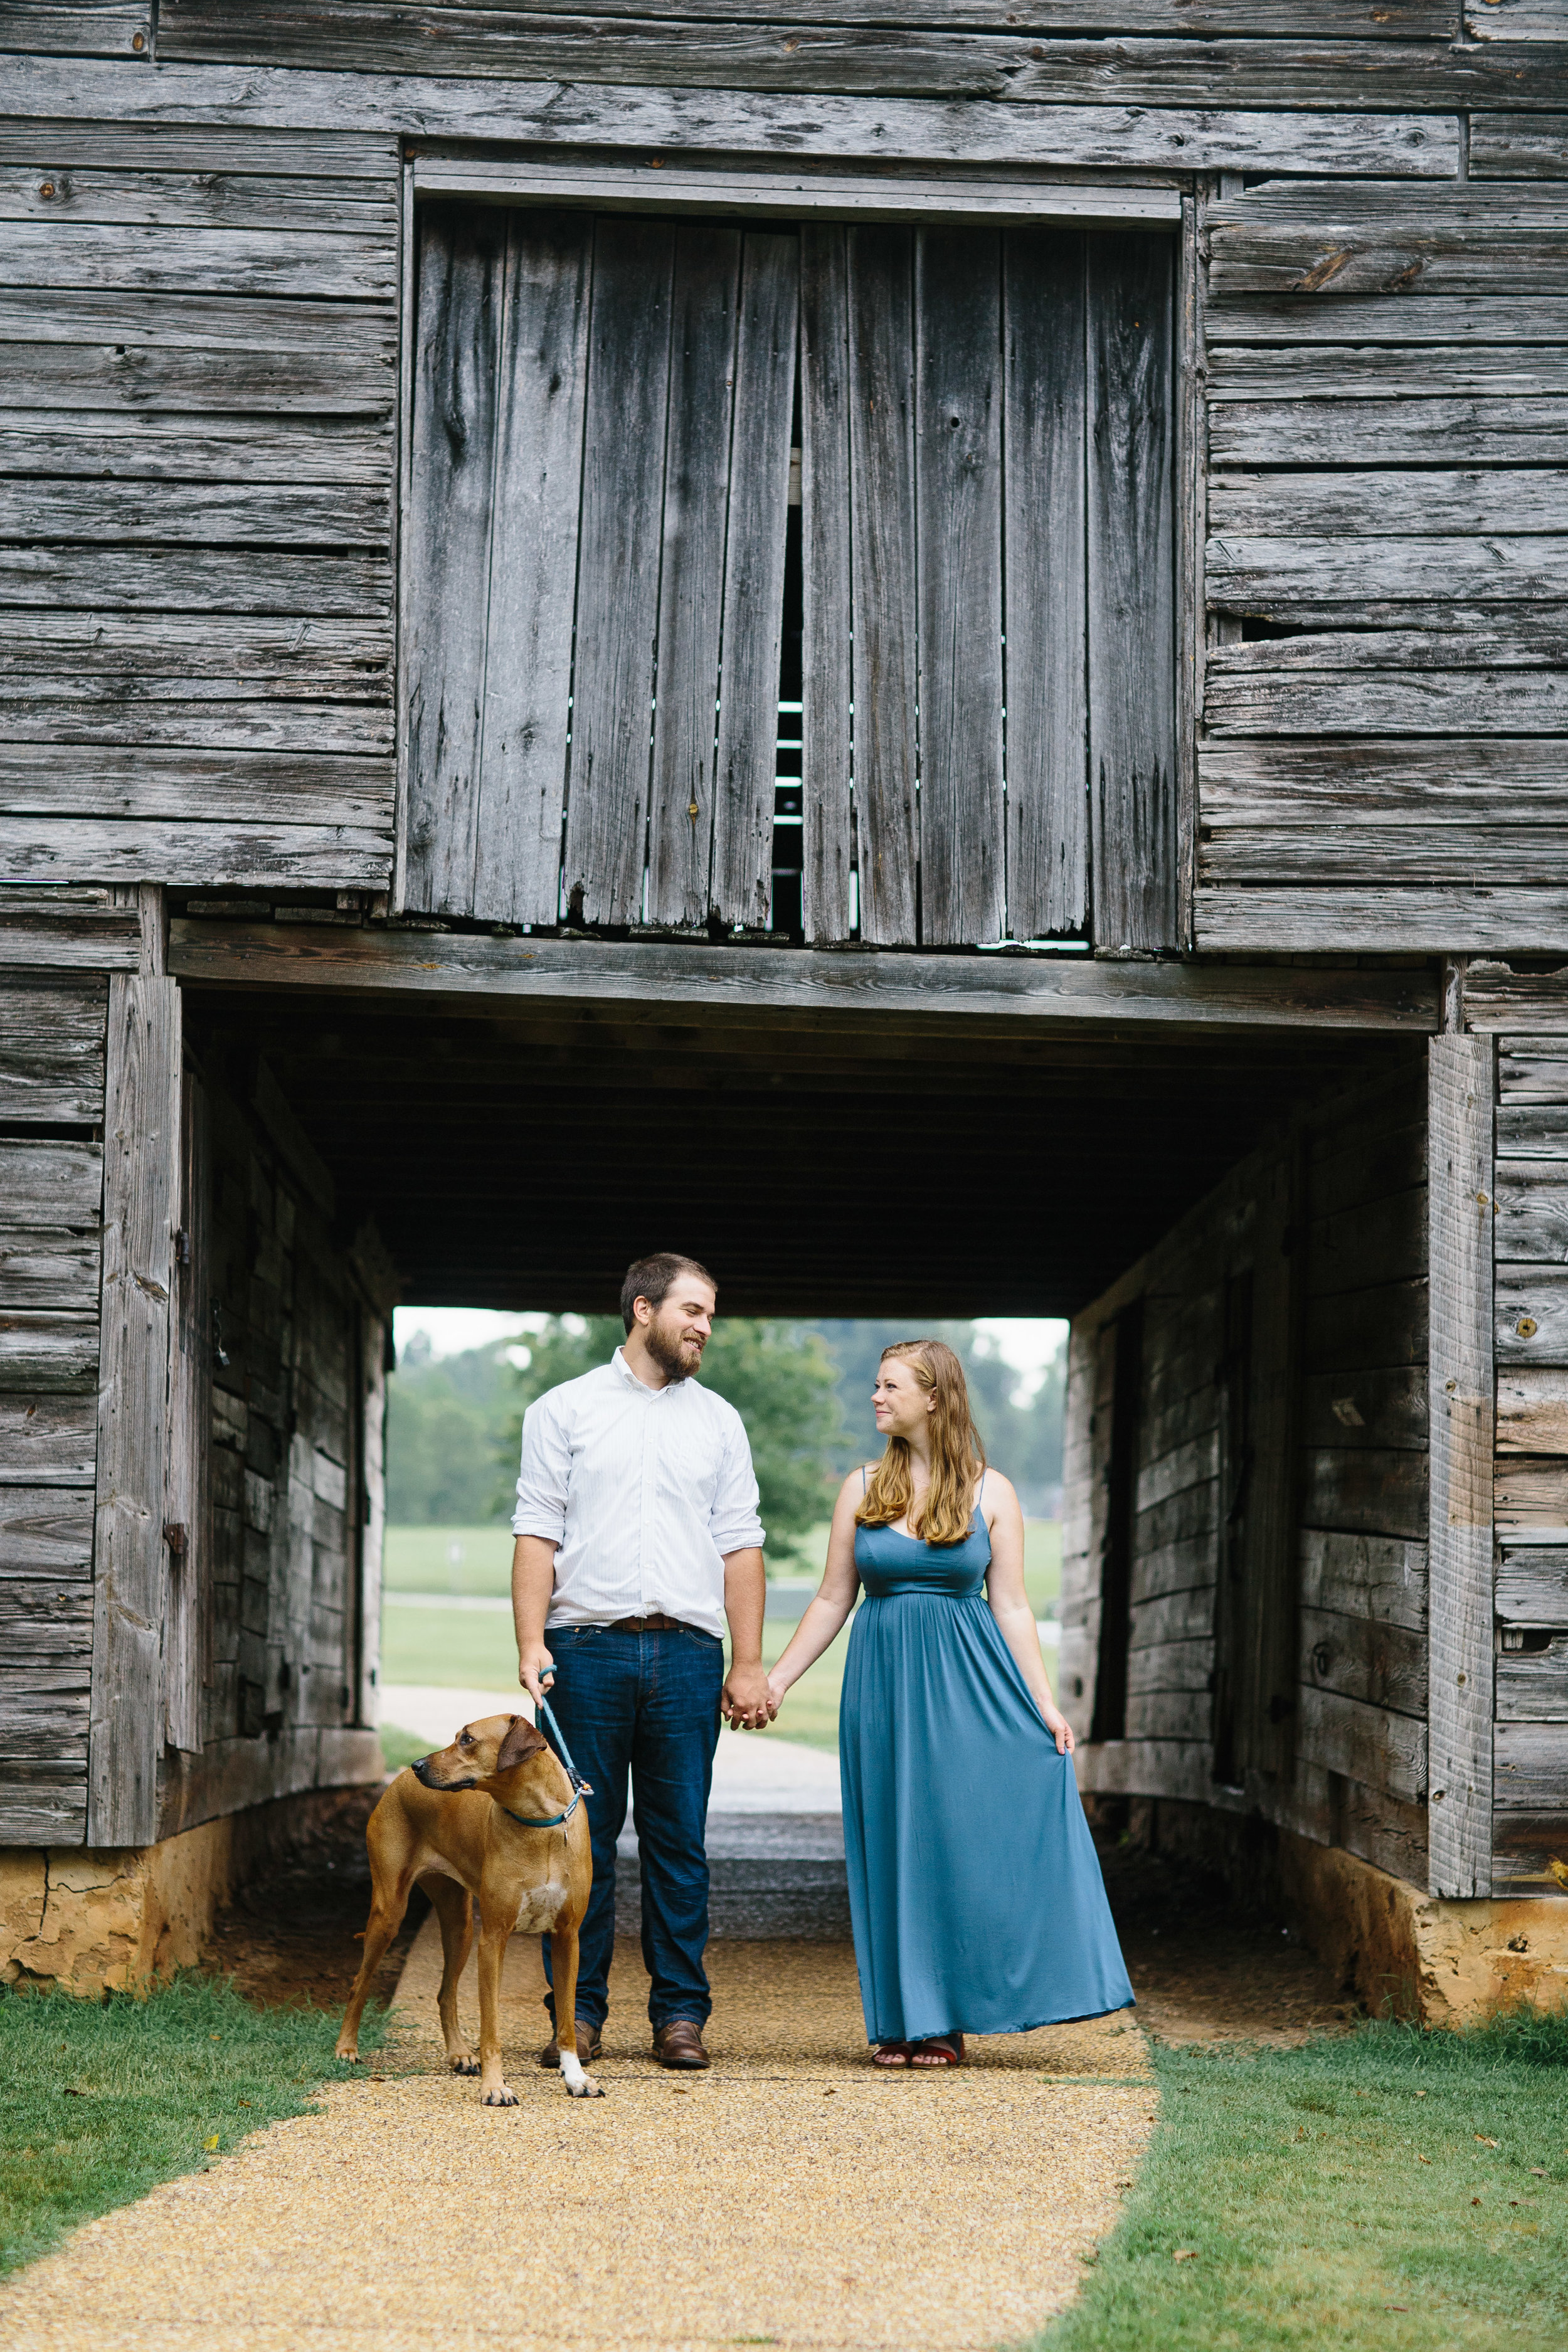 E Carroll Joyner Park.Wake Forest Photographer.Engagement photo inspiration.photos with a dog.engagement photos with a dog.JPG